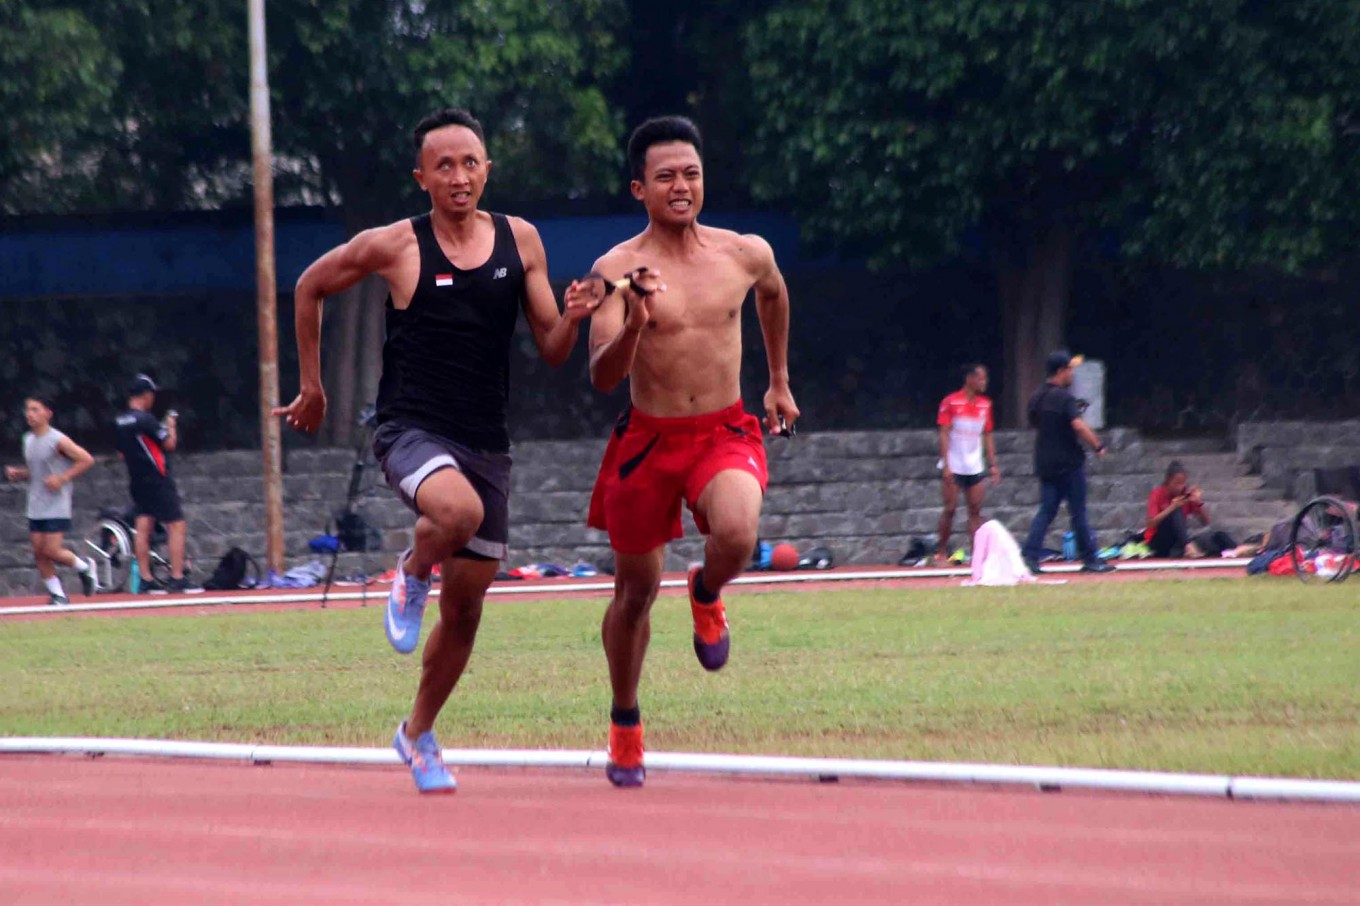 A visually impaired runner jogs alongside his chaperone during a training session. JP/Maksum Nur Fauzan]